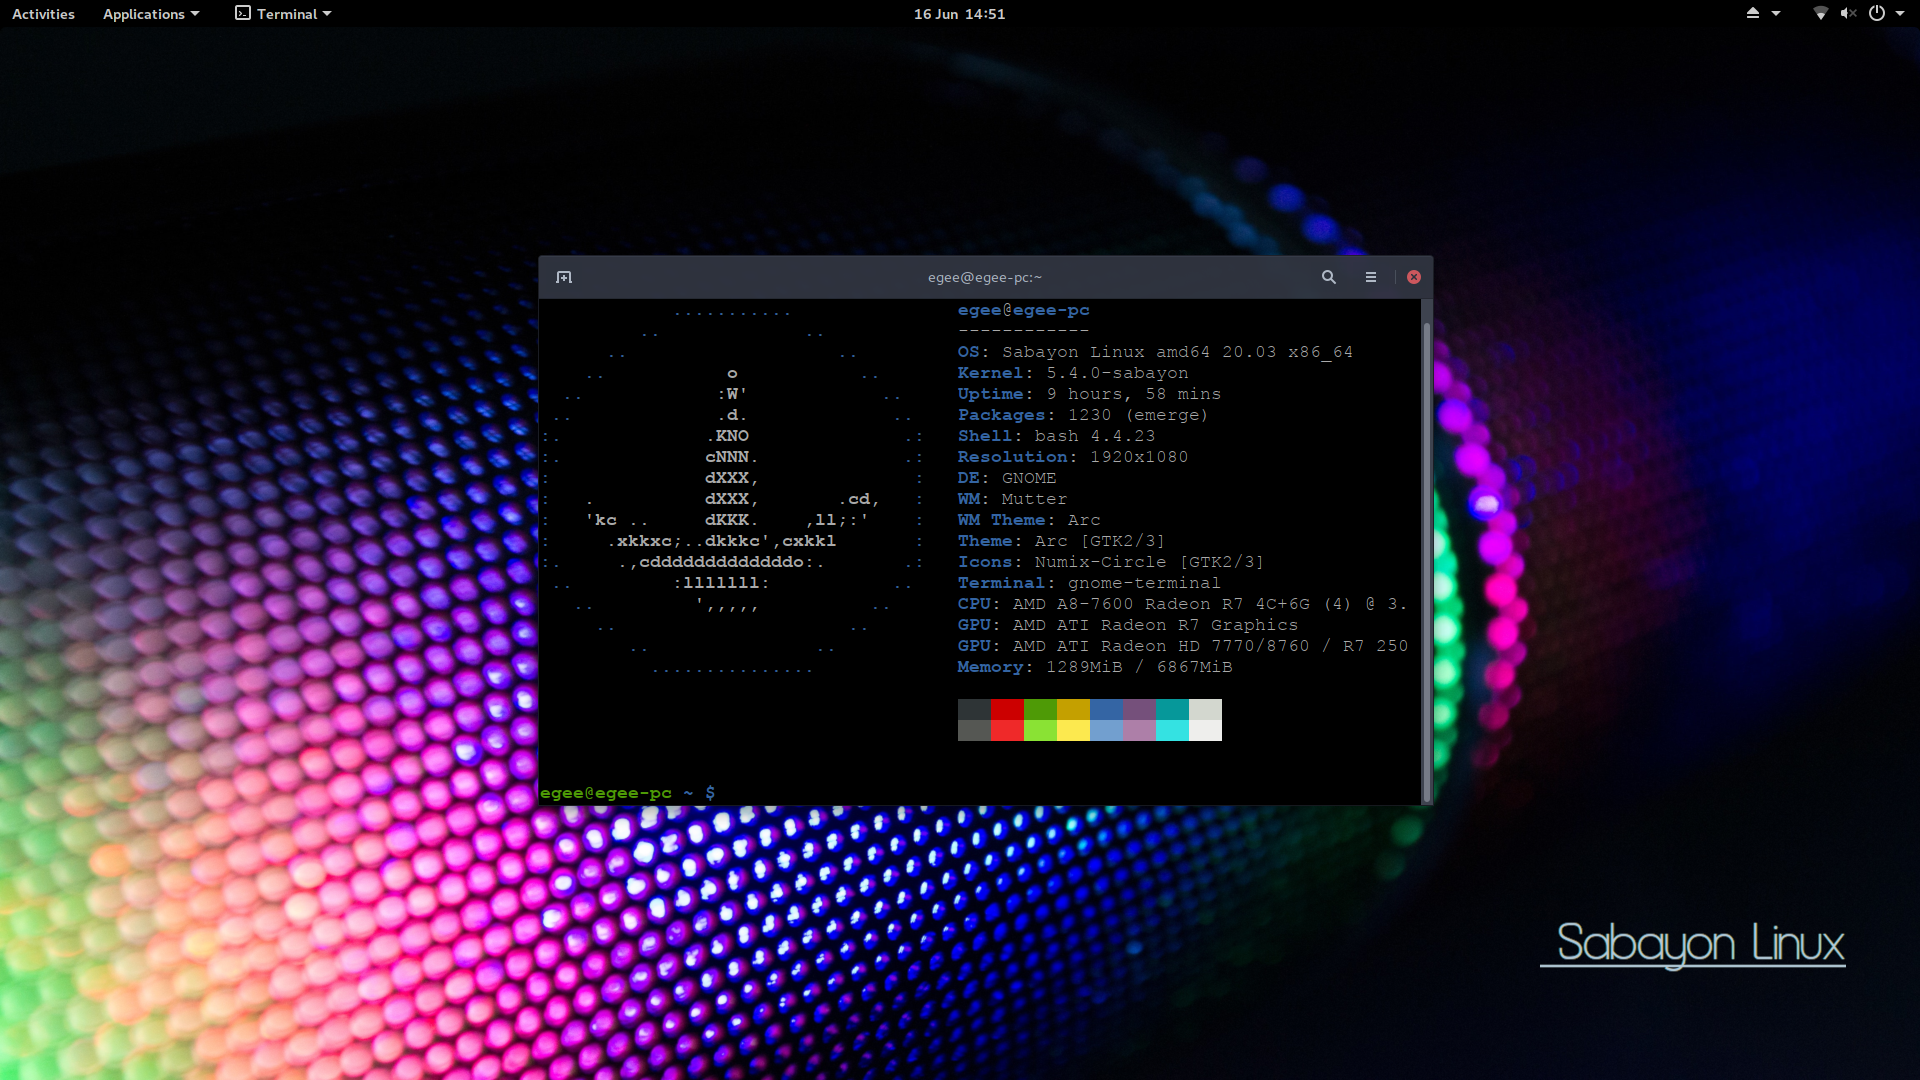 Sabayon Linux 3 19 Overview A Curious Gentoo Based Linux Distro By Egee Distro Delves Medium